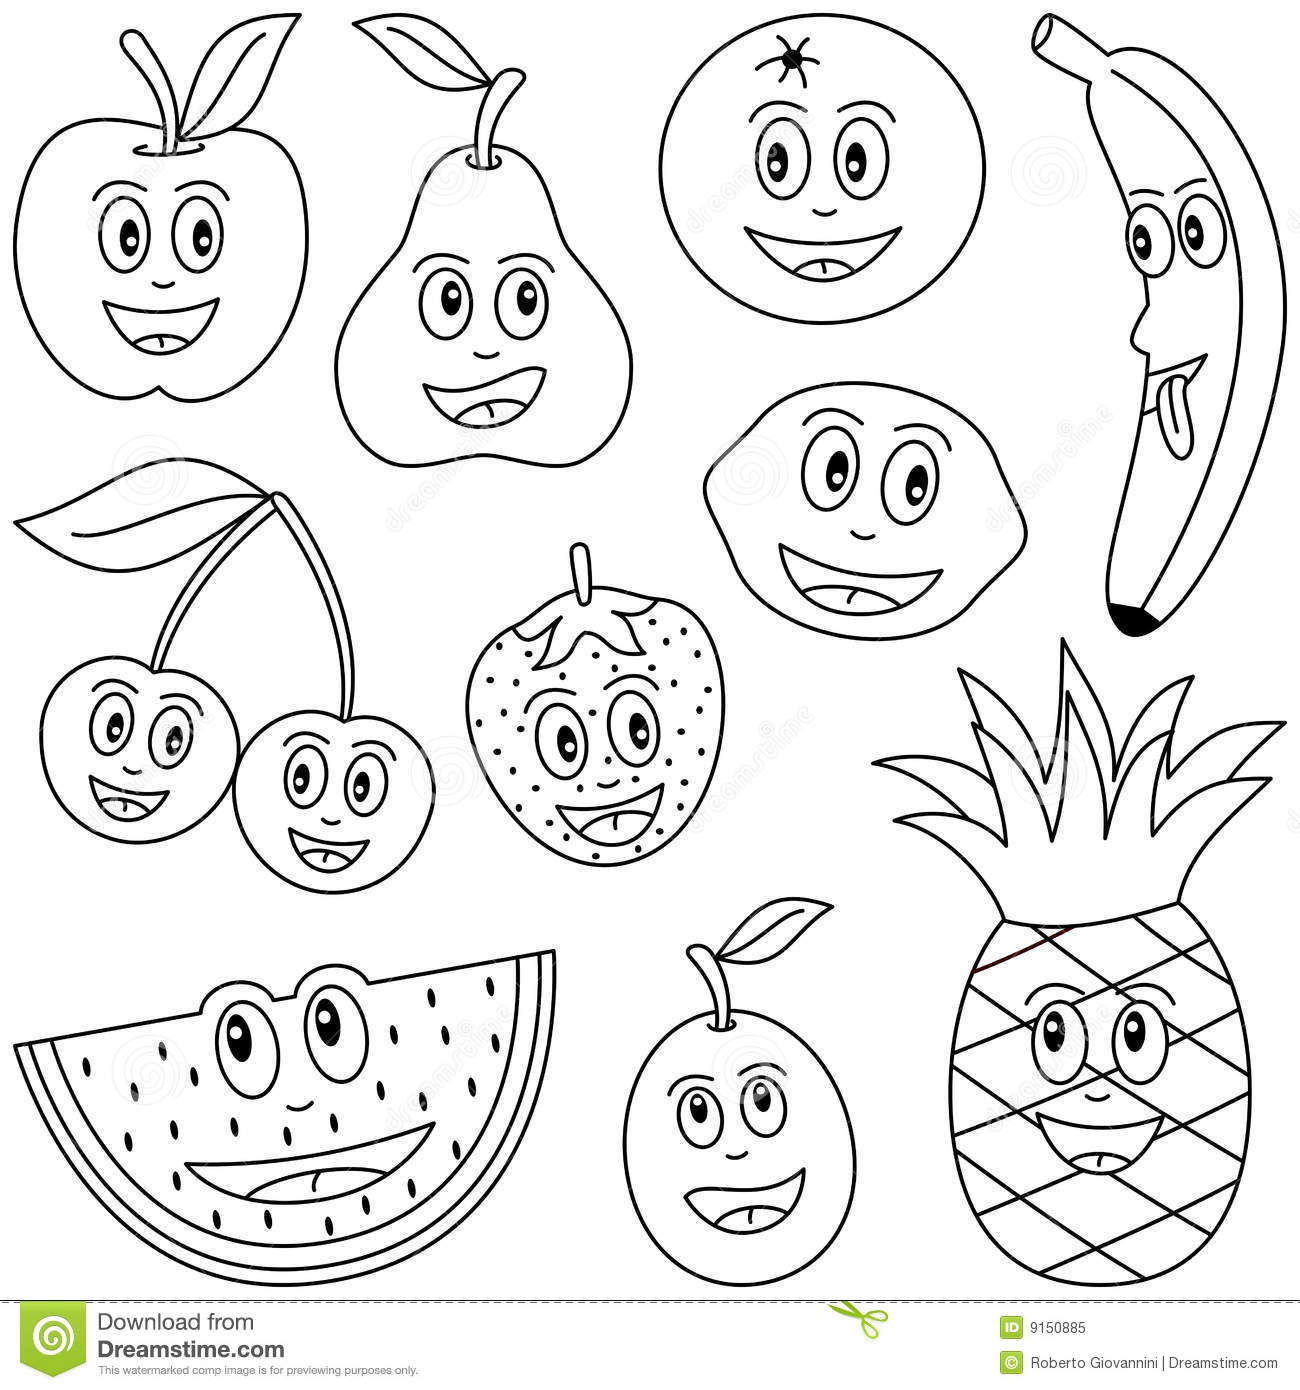 colouring images of fruits free printable fruit coloring pages for kids colouring fruits of images